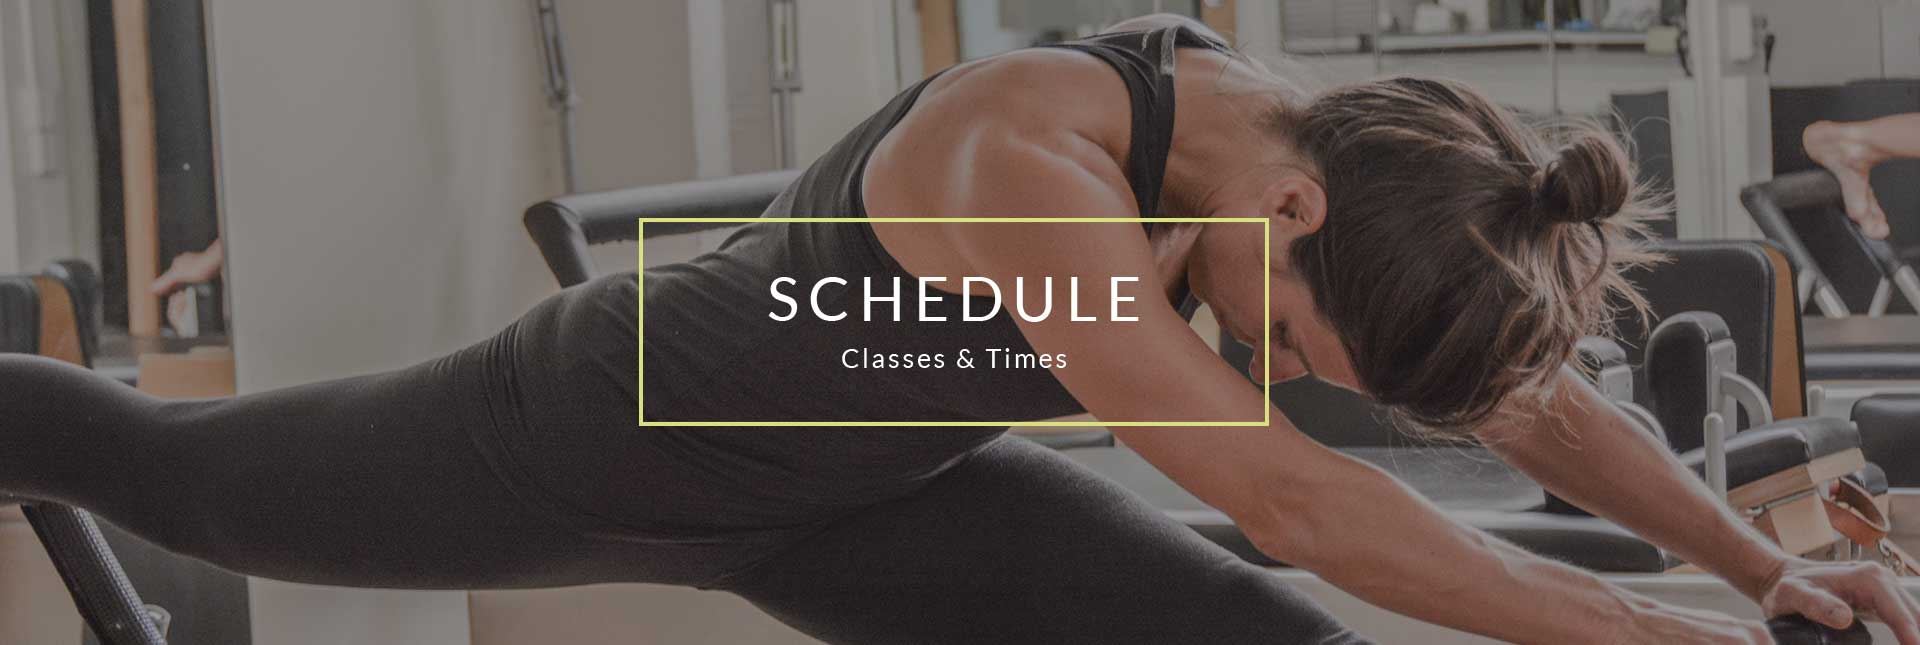 Geometry Pilates Schedule